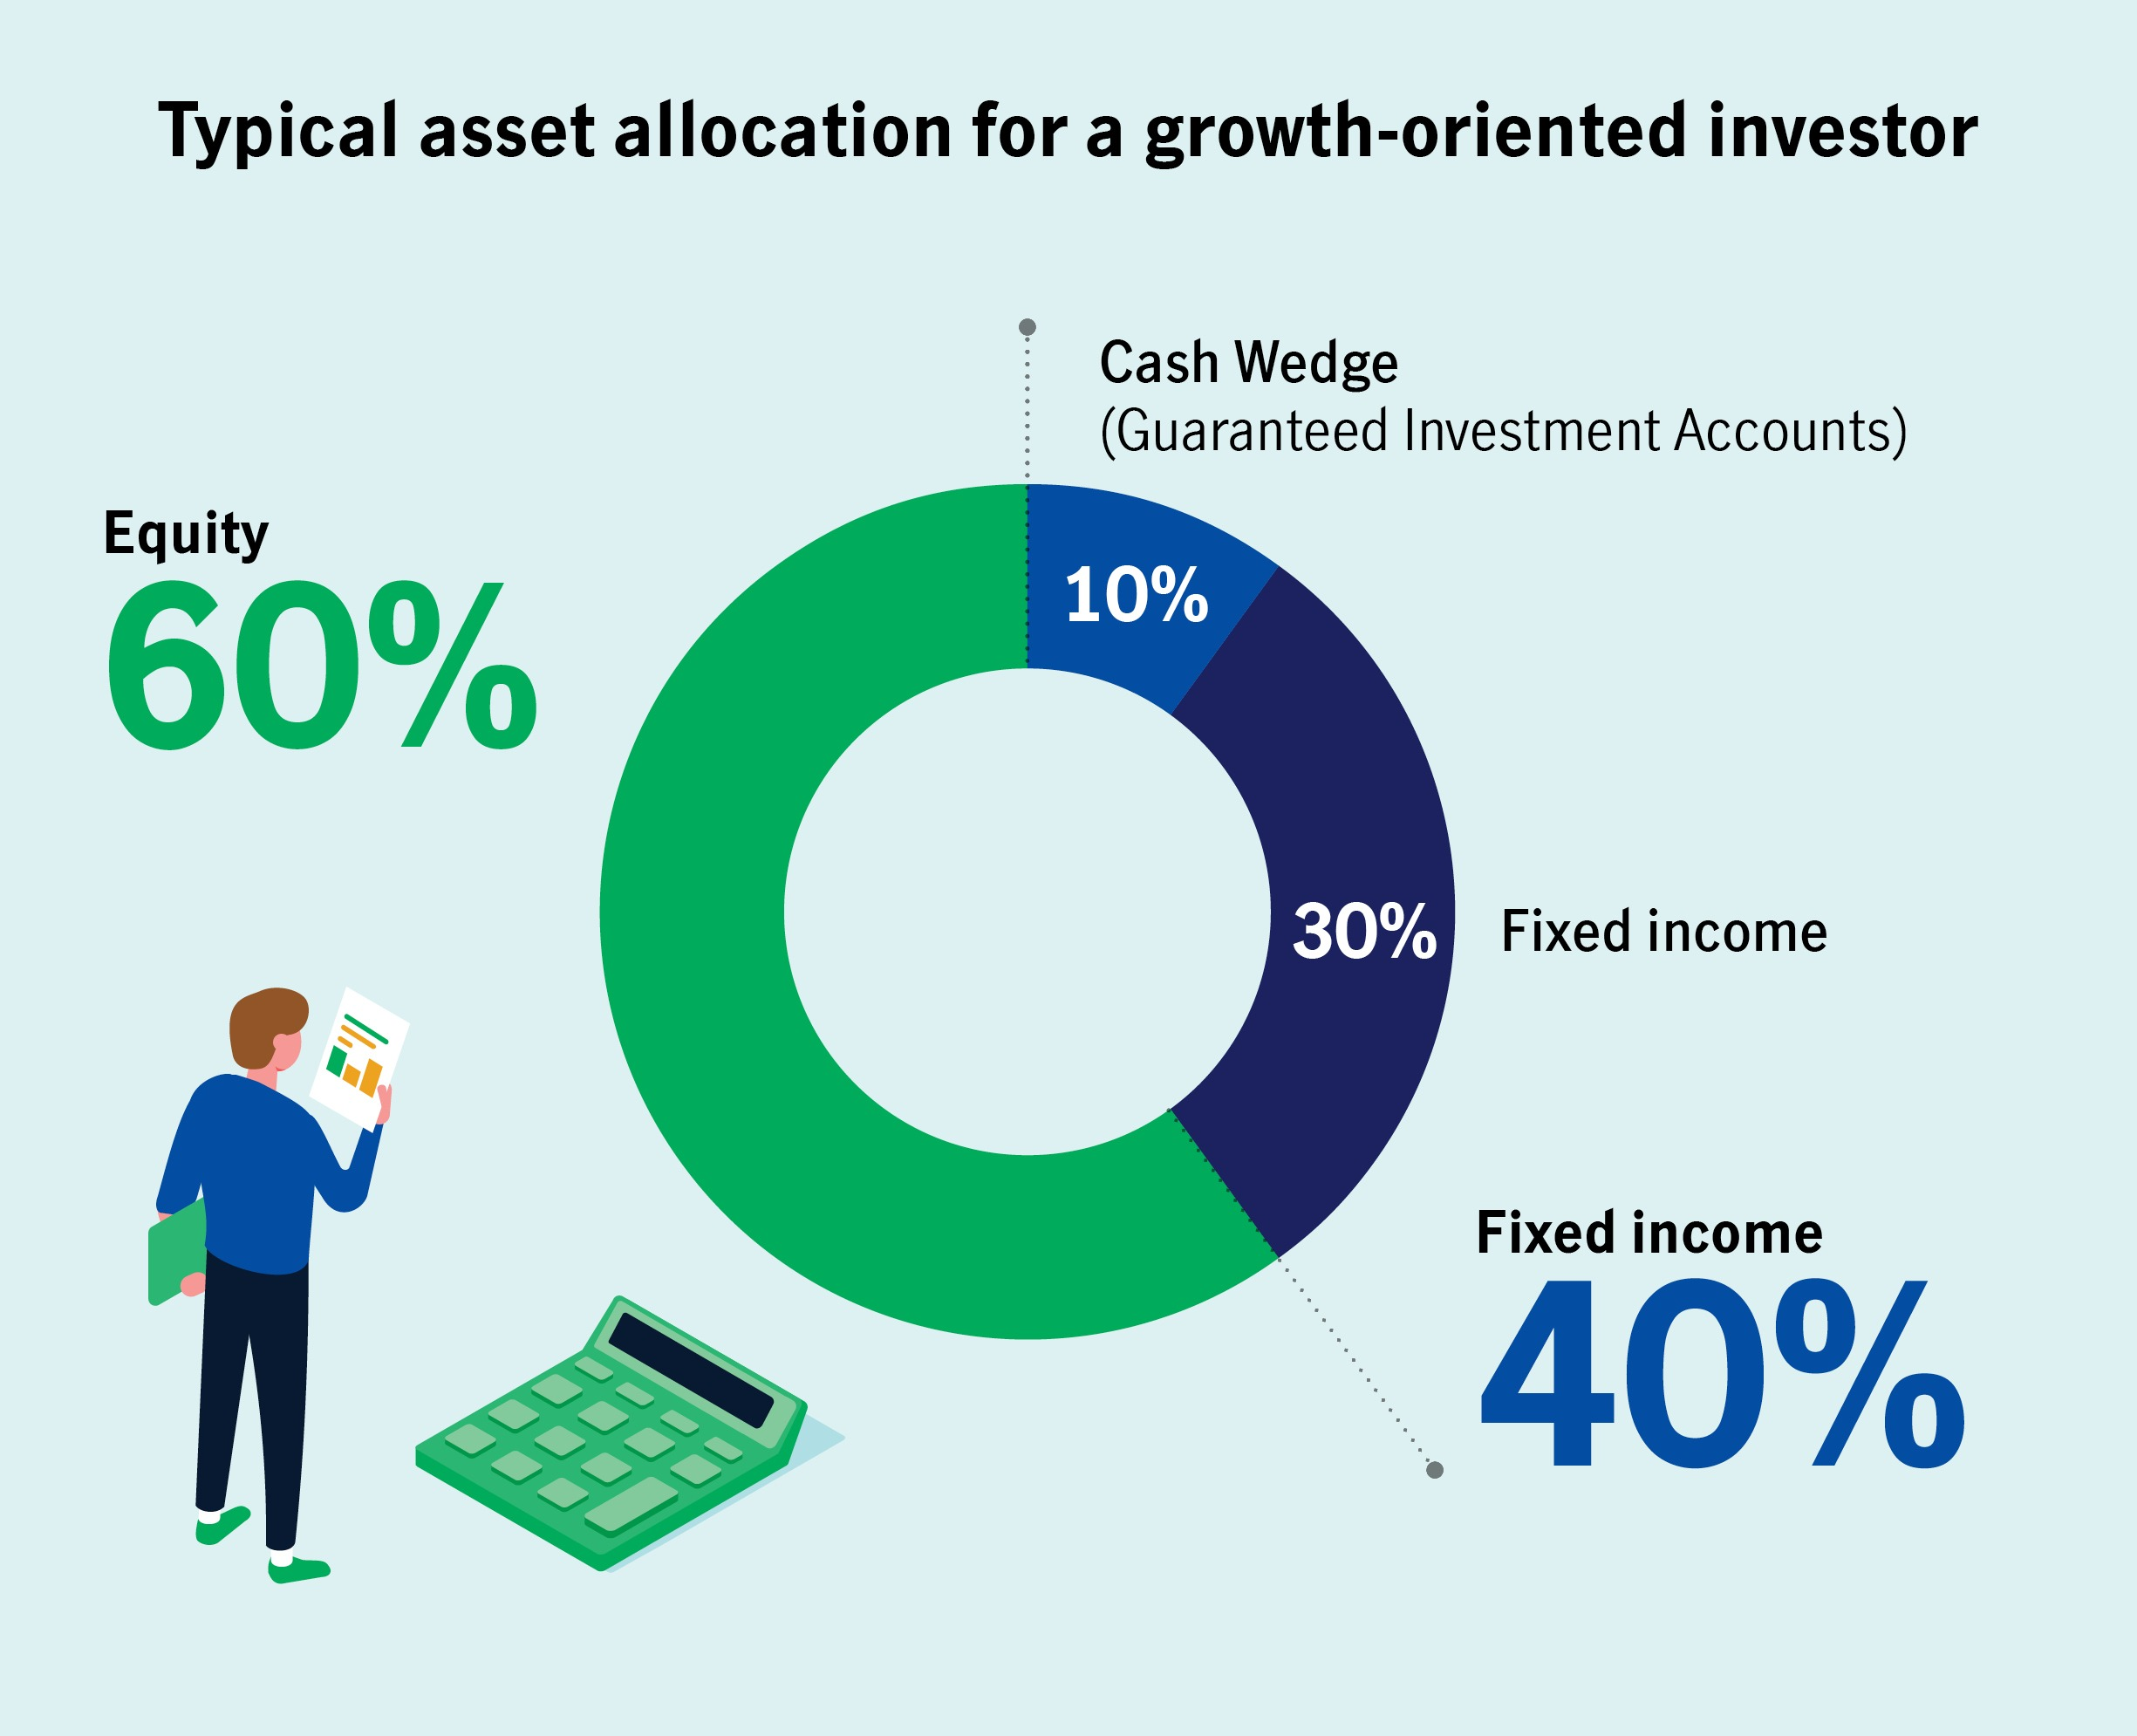 Typical asset allocation for a growth-oriented investor